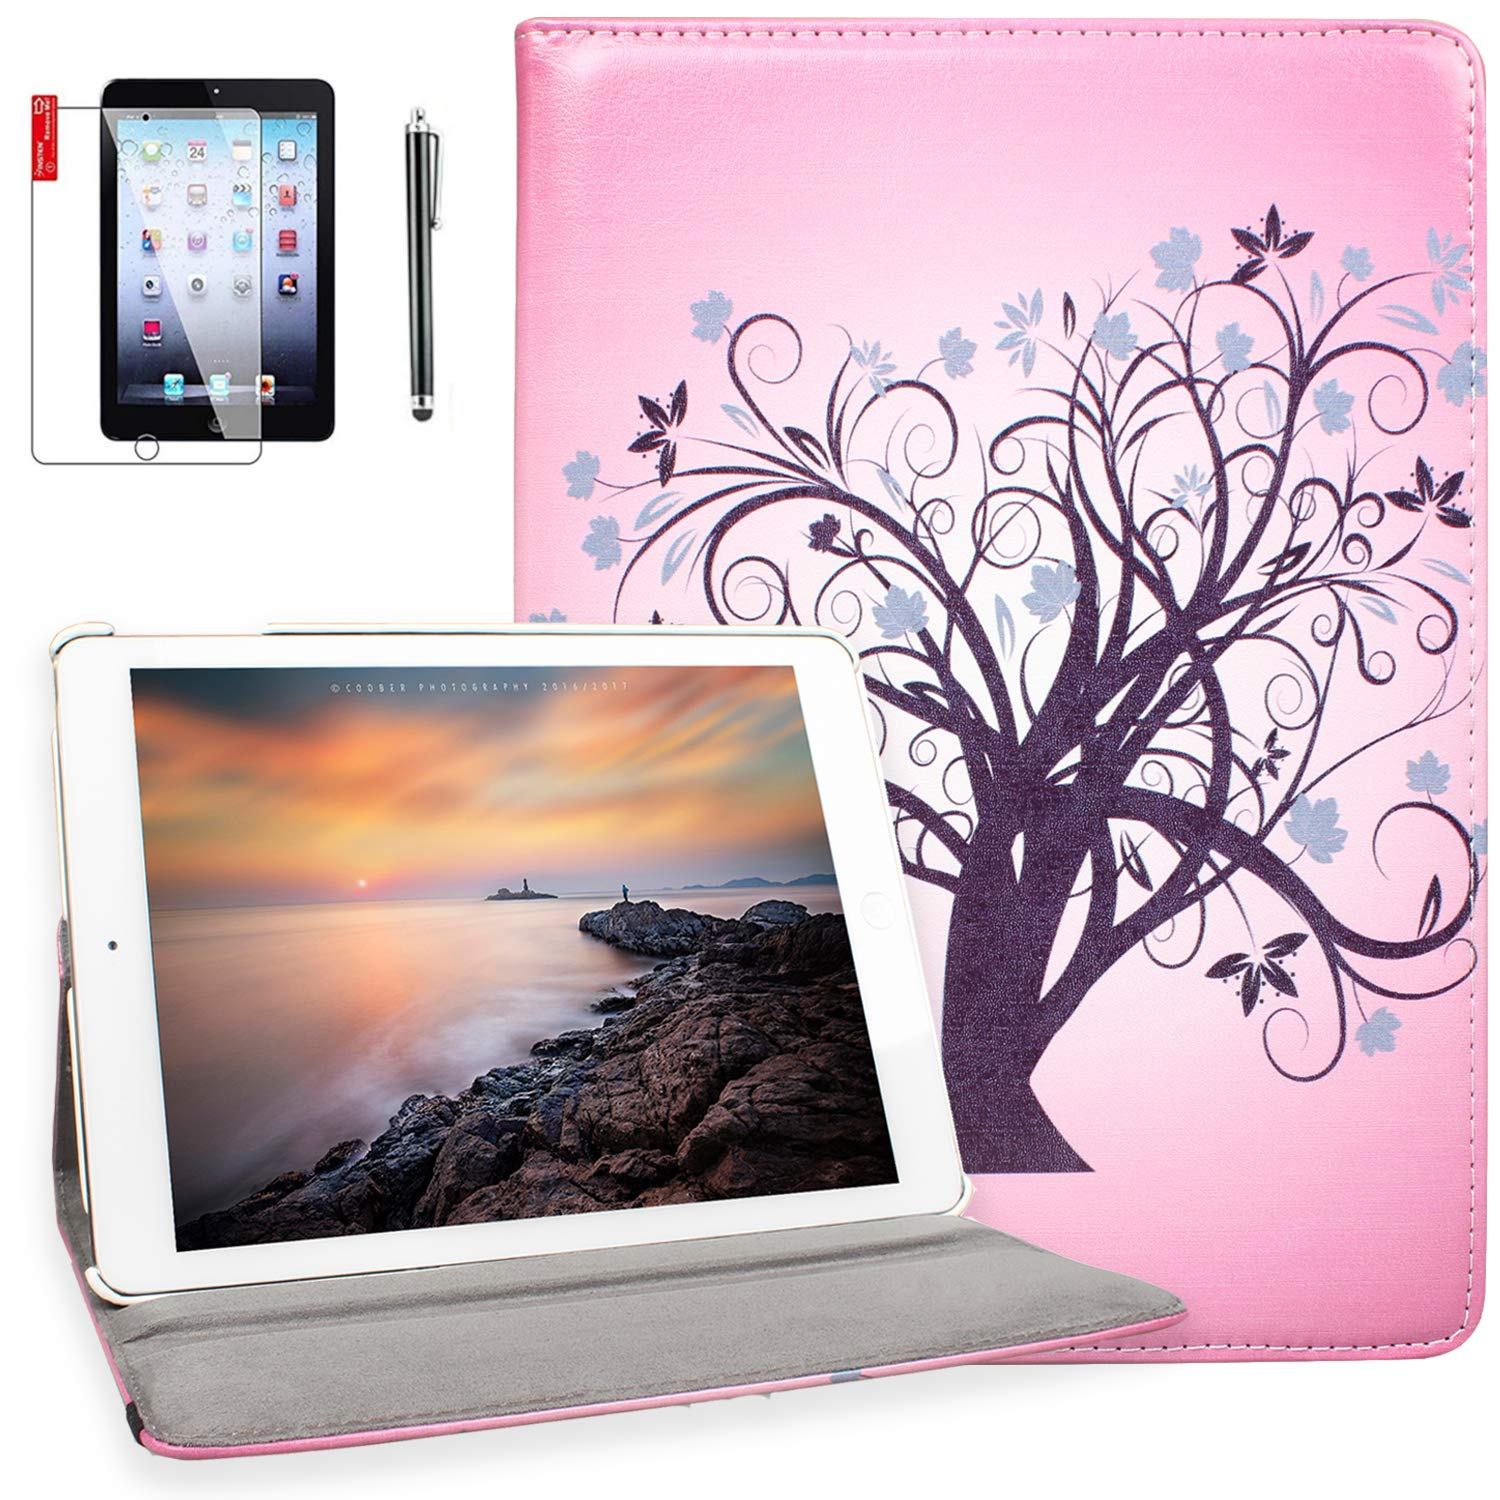 iPad 4th Generation Case with Screen Protector and Stylus - iPad 2nd 3rd 4th Generation Case Cover - 360 Degree Rotating Stand, Auto Sleep Wake, Shockproof, A1395 A1416 A1458 MD510LL/A (Miss Tree)